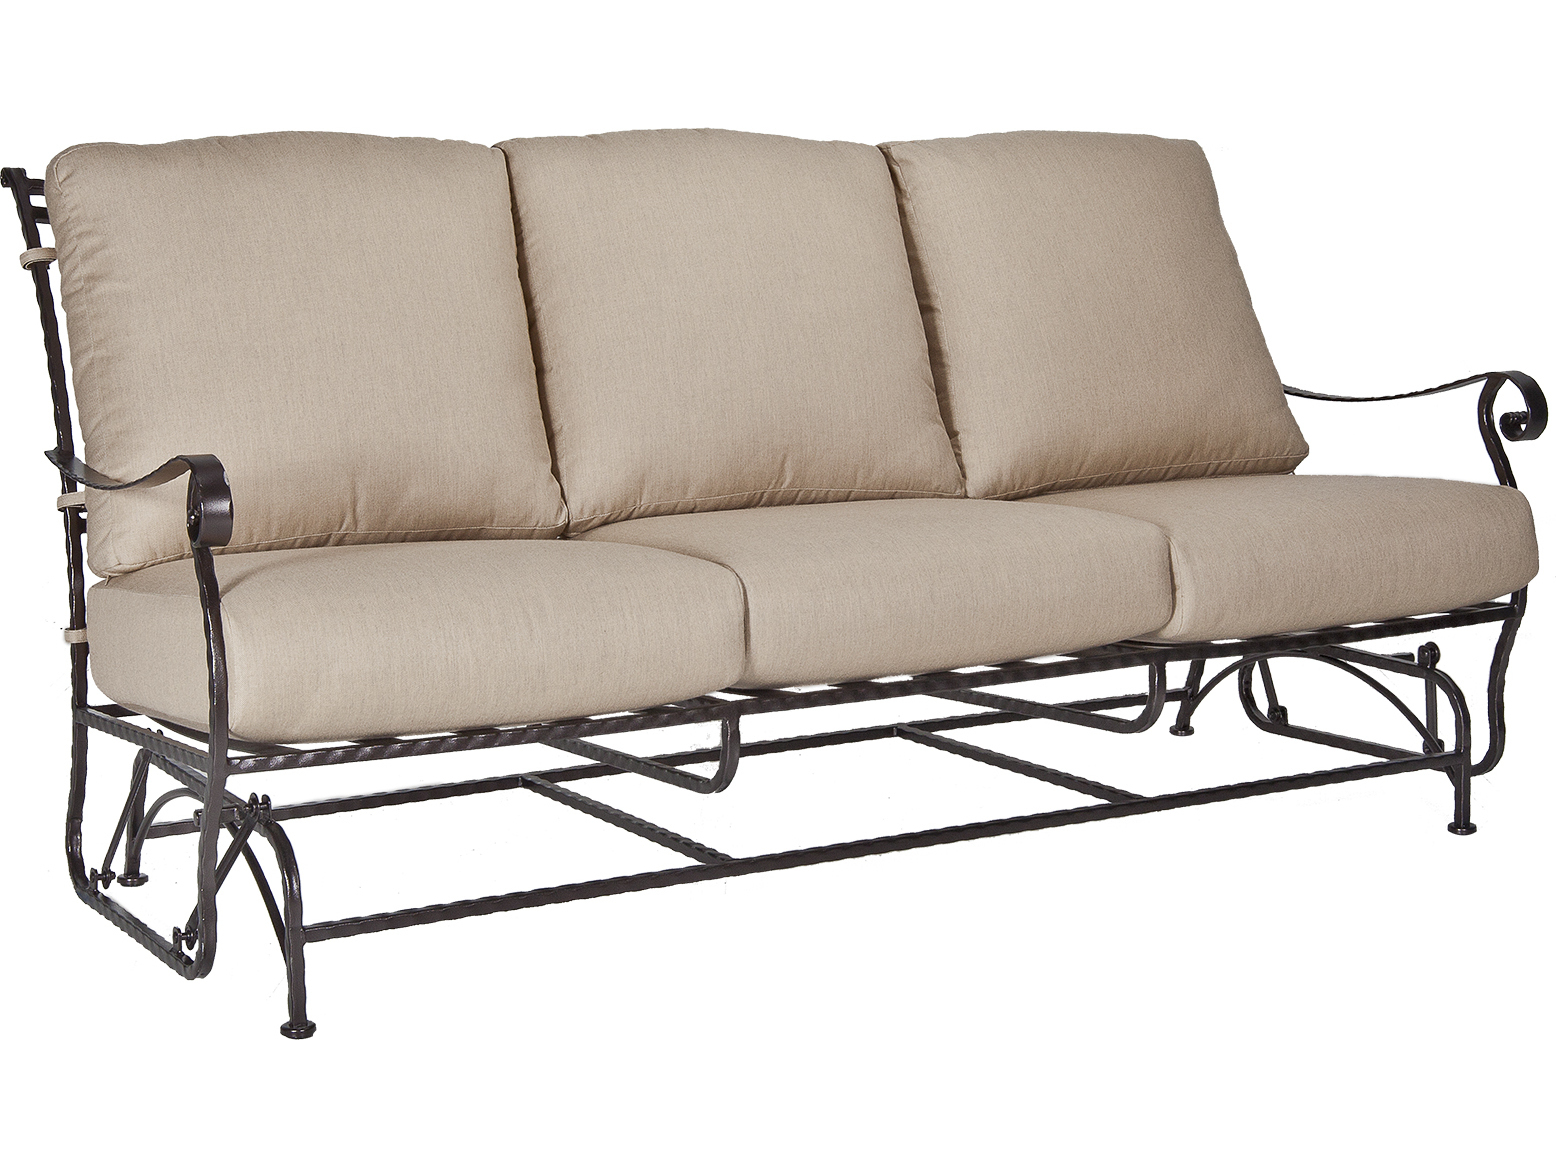 ow lee san cristobal wrought iron three seat sofa glider. Black Bedroom Furniture Sets. Home Design Ideas